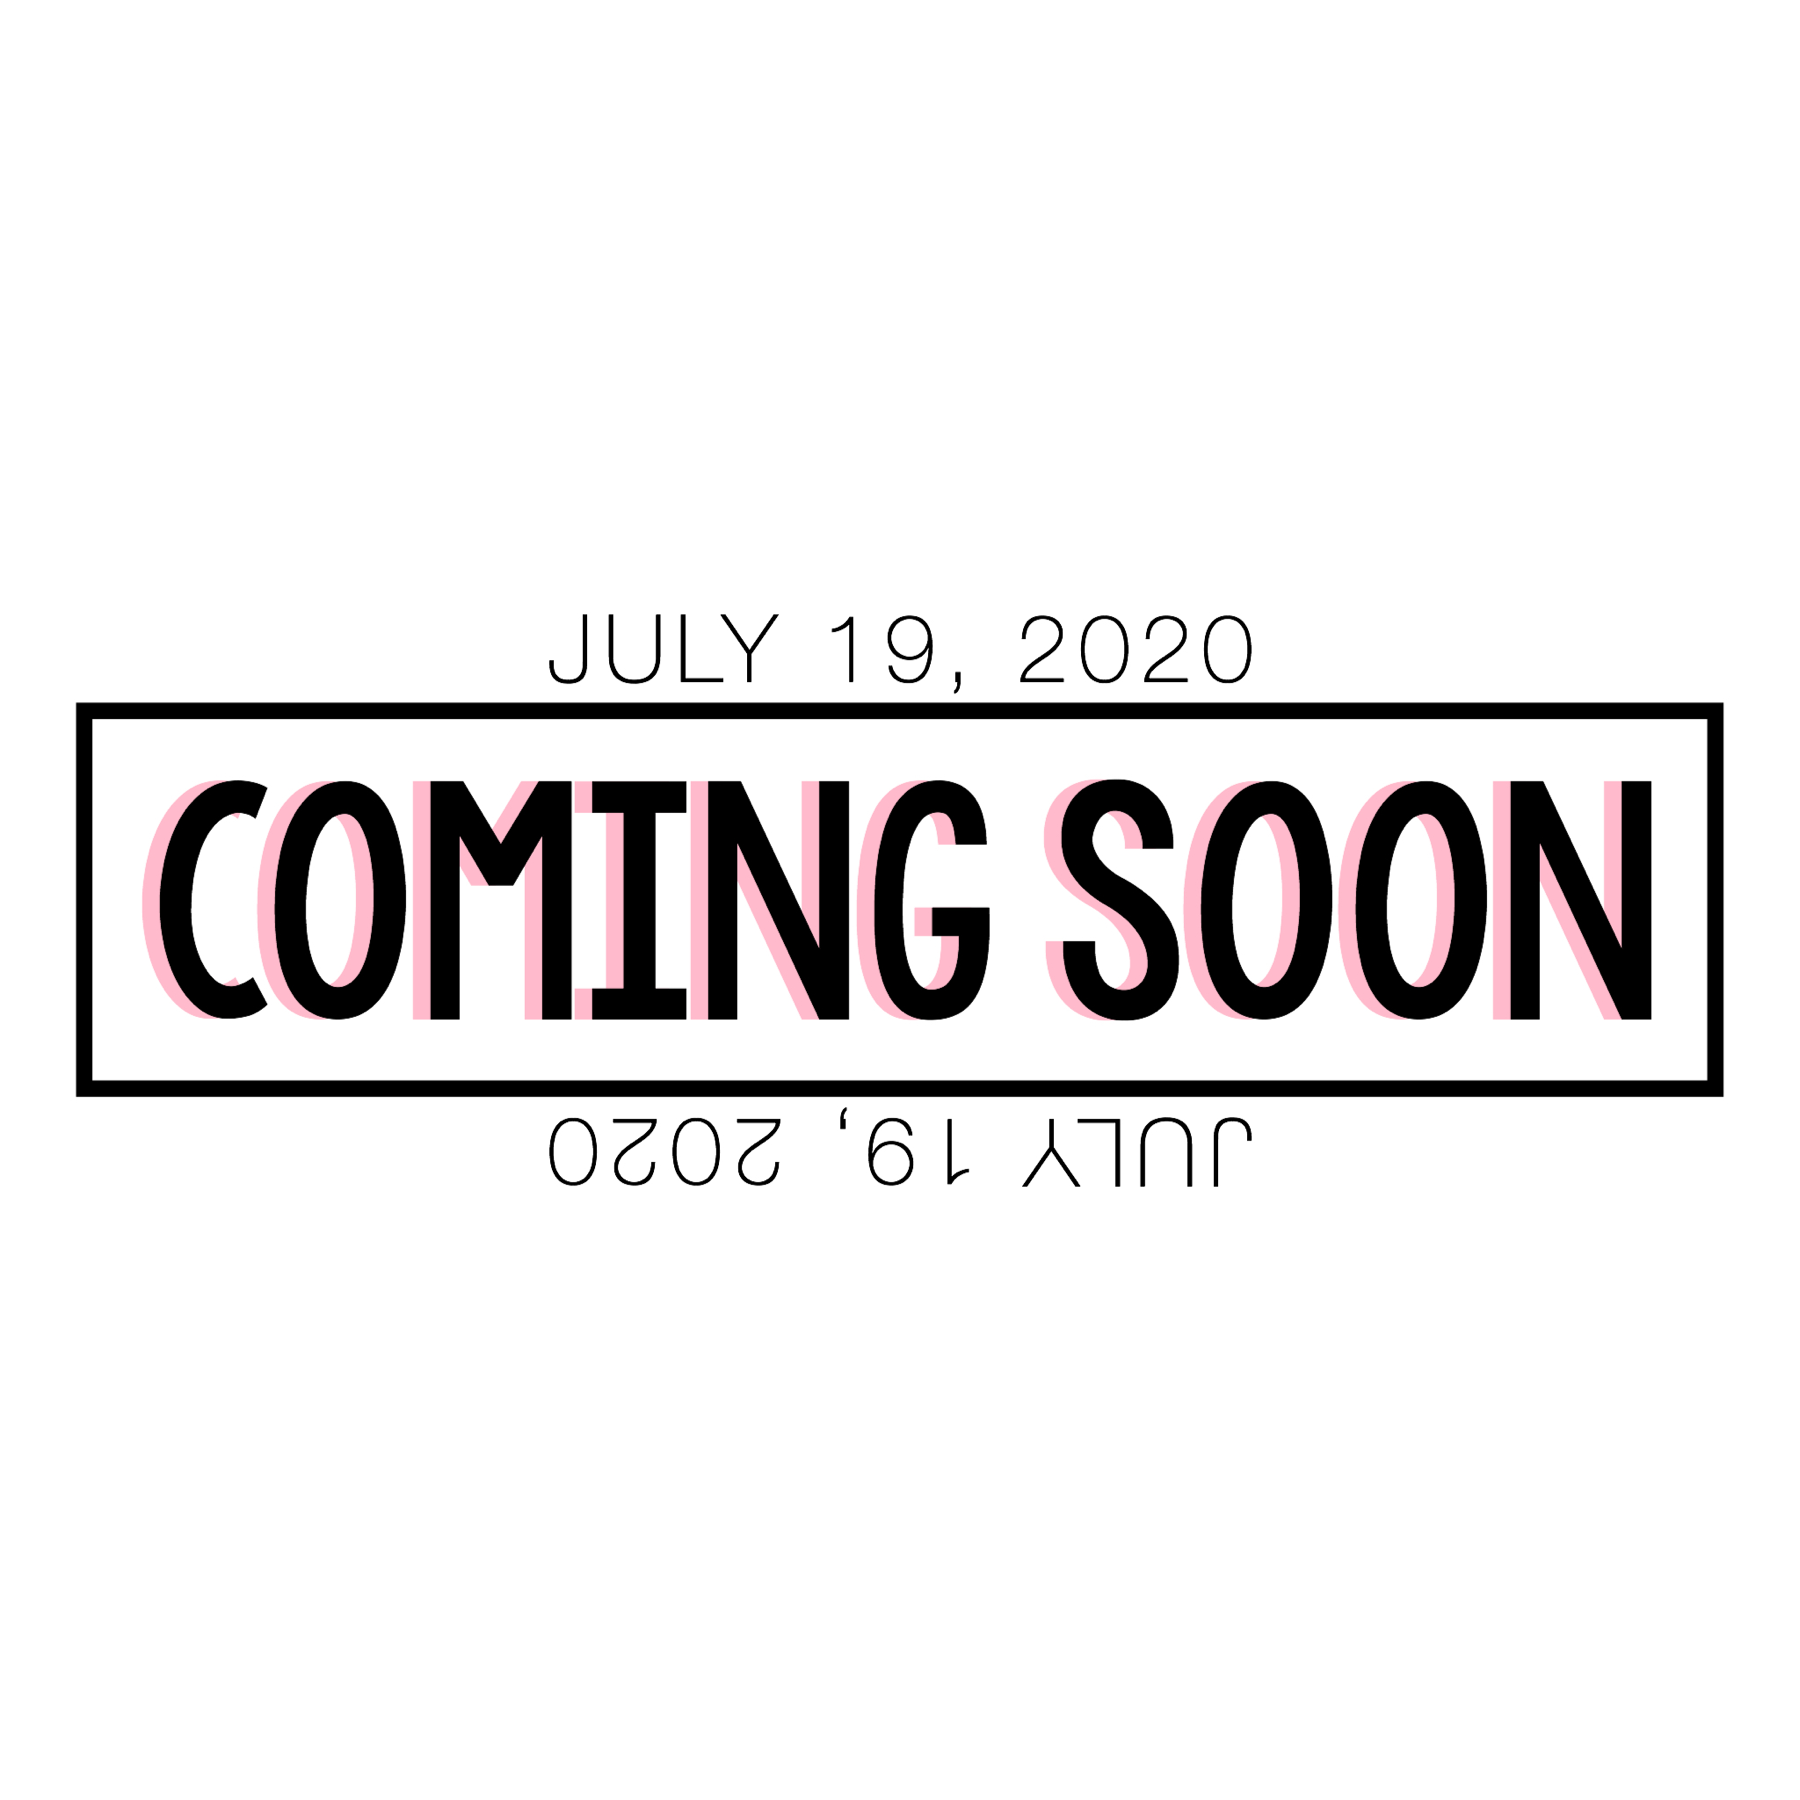 • JULY 19 • COMING SOON • JULY 19 •